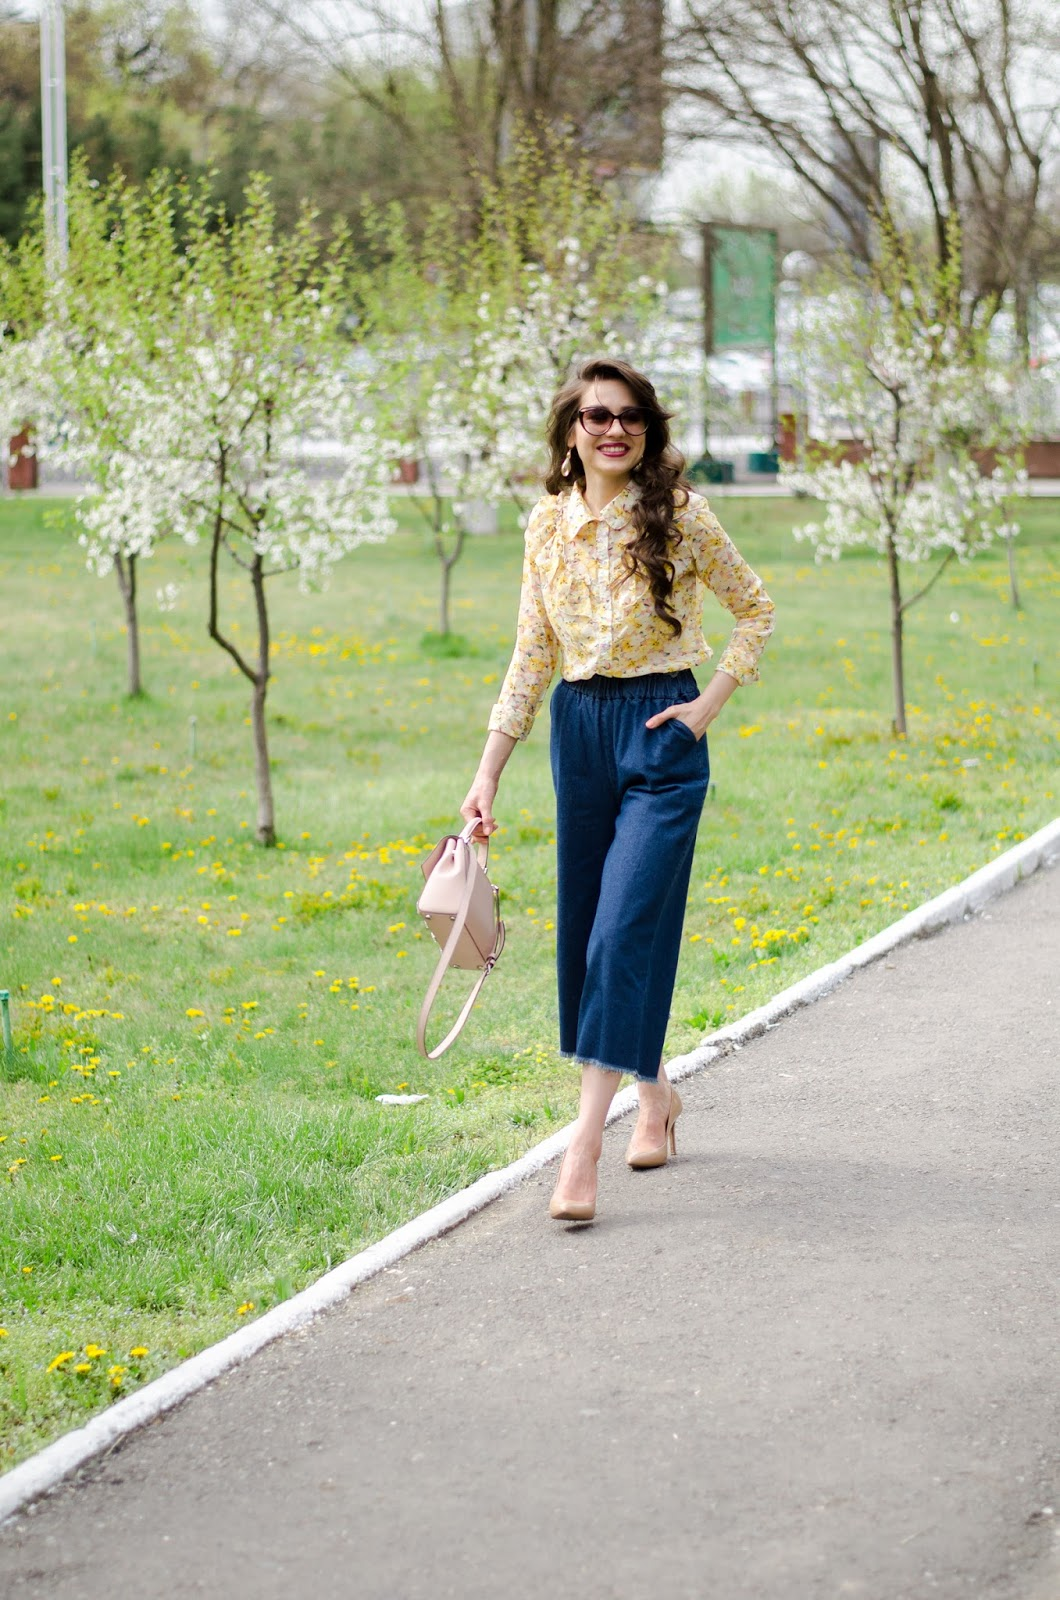 fashion blogger diyorasnotes diyora beta yellow blouse with ruffles denim cullote heels spring outfit michael kore bag